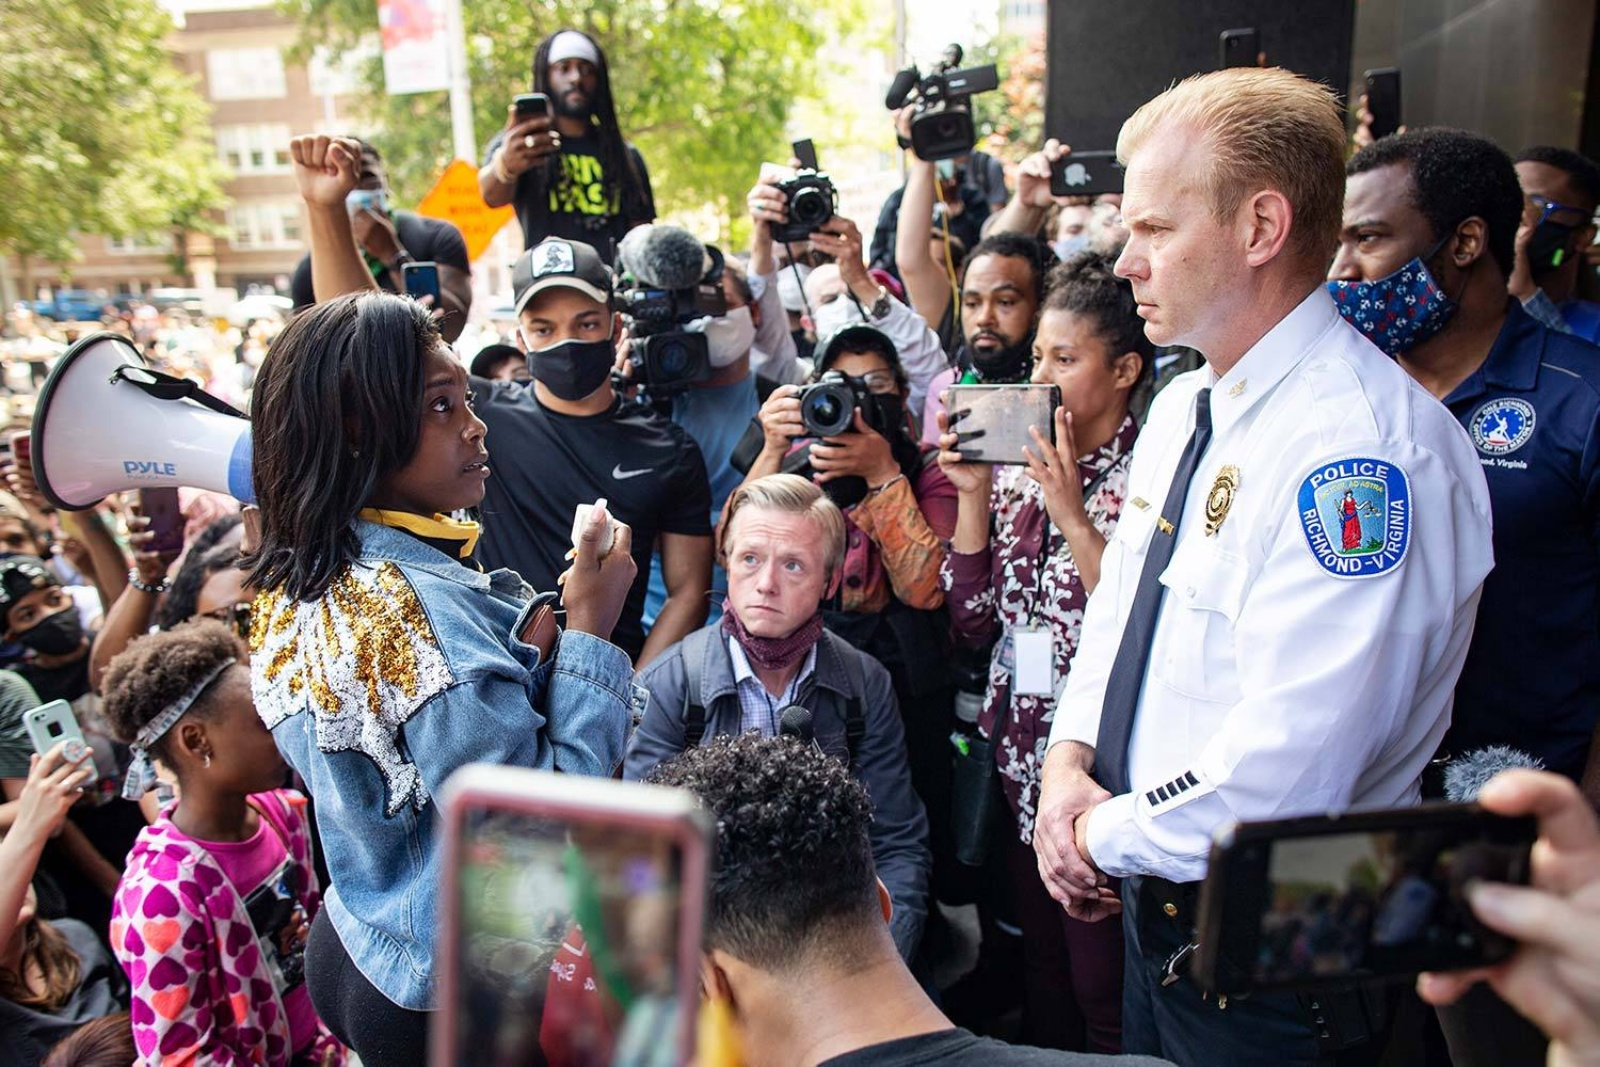 Brian Palmer photograph of female protestor looking at police chief in crowd of protestors